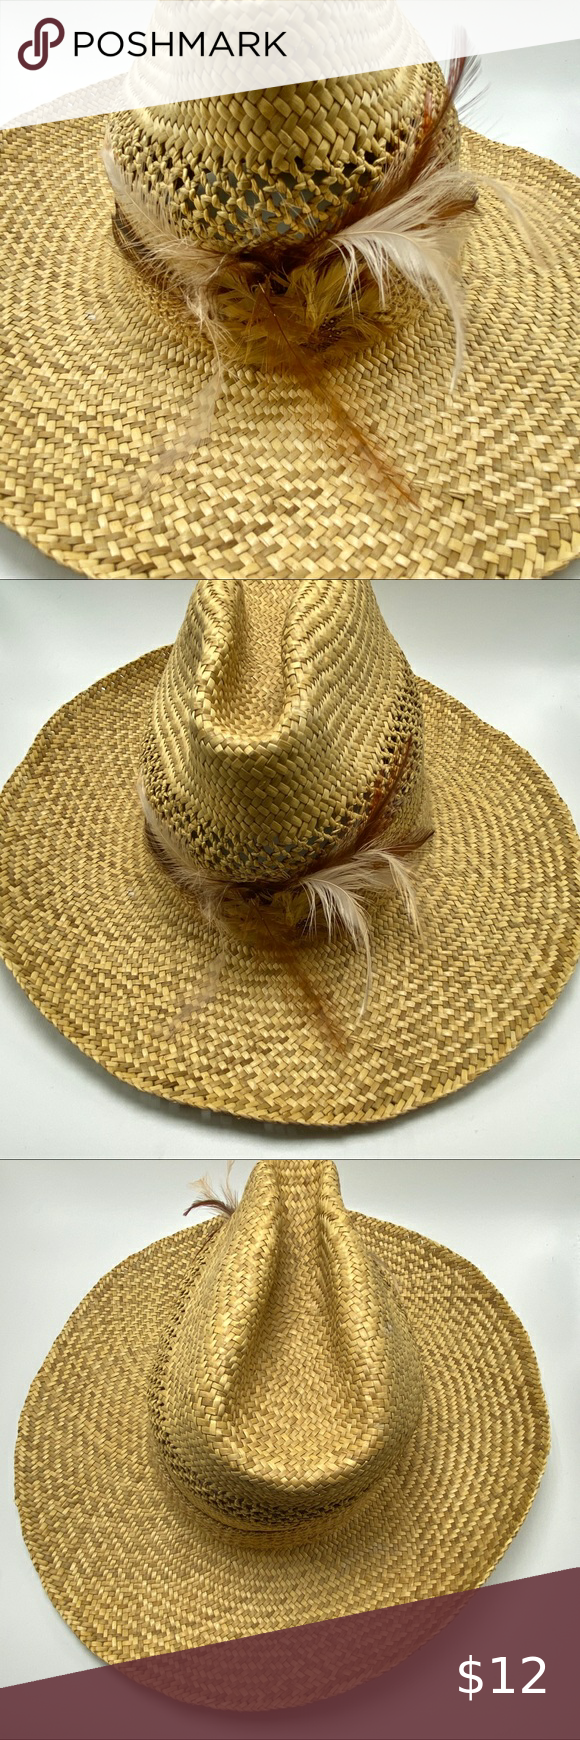 Straw Cowboy Hat With Feathers Straw Cowboy Hat Cowboy Hats Women Accessories Hats